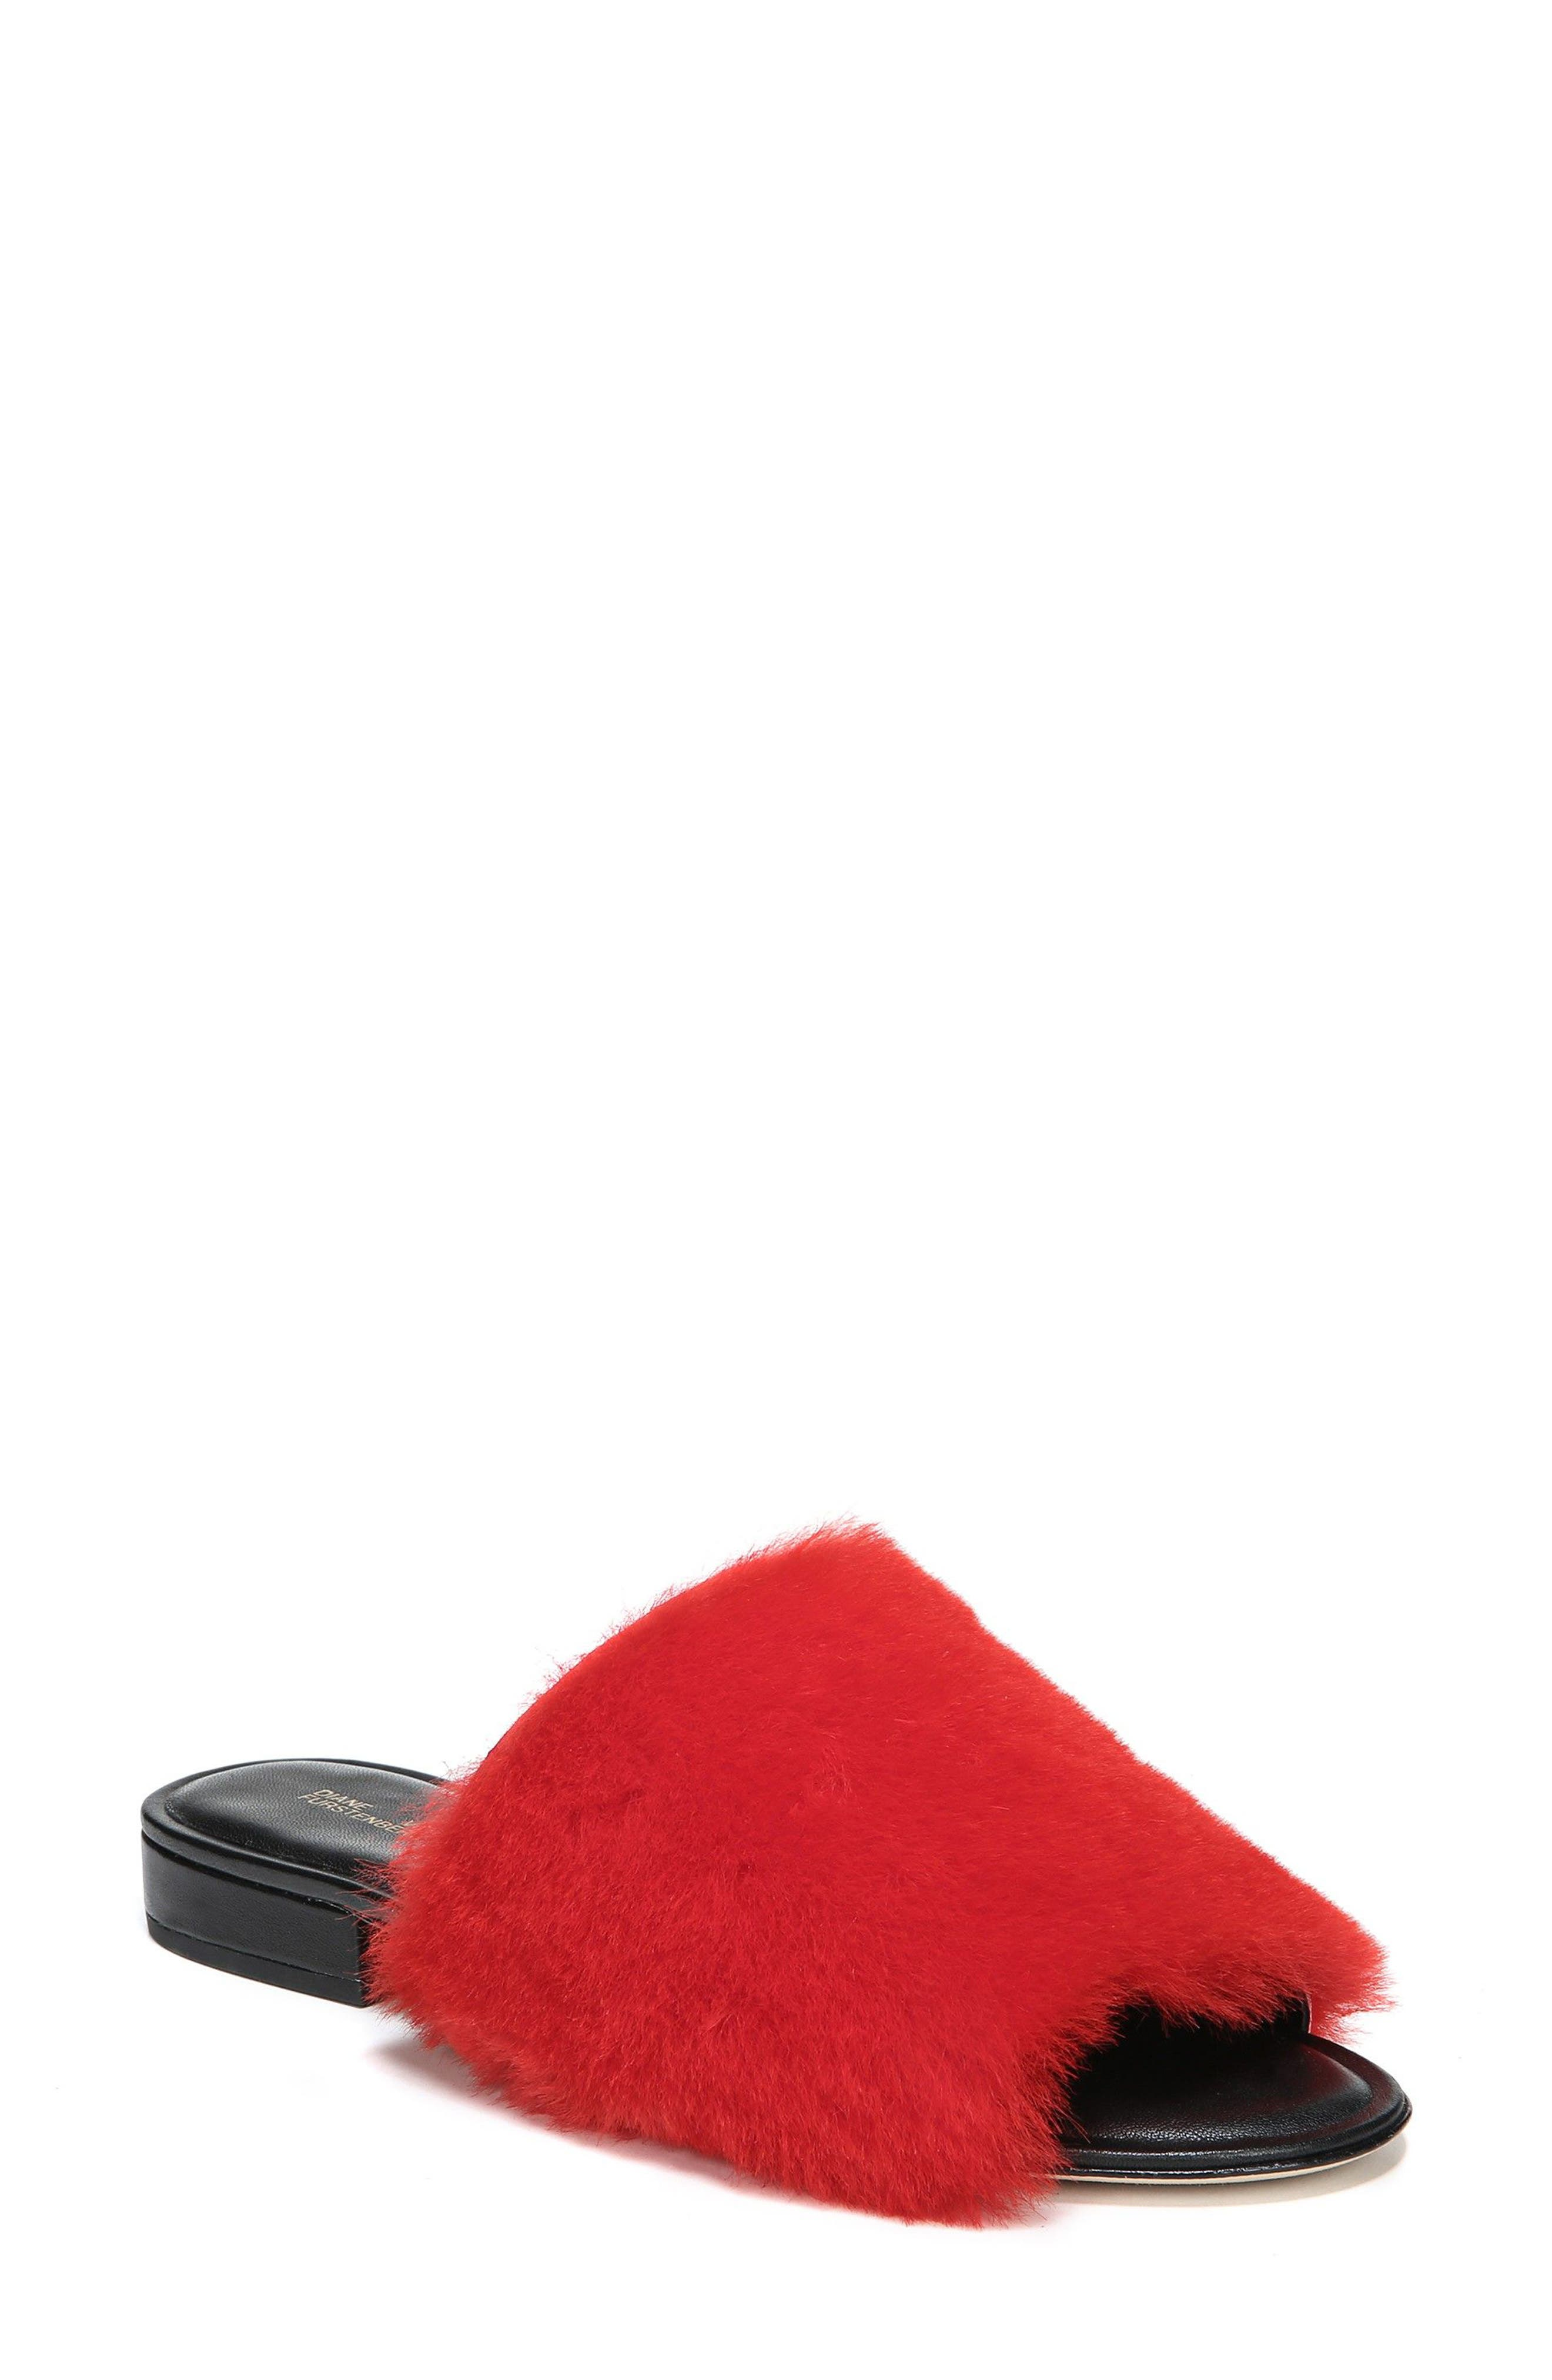 Santi Genuine Shearling Slide Sandal,                         Main,                         color, Red